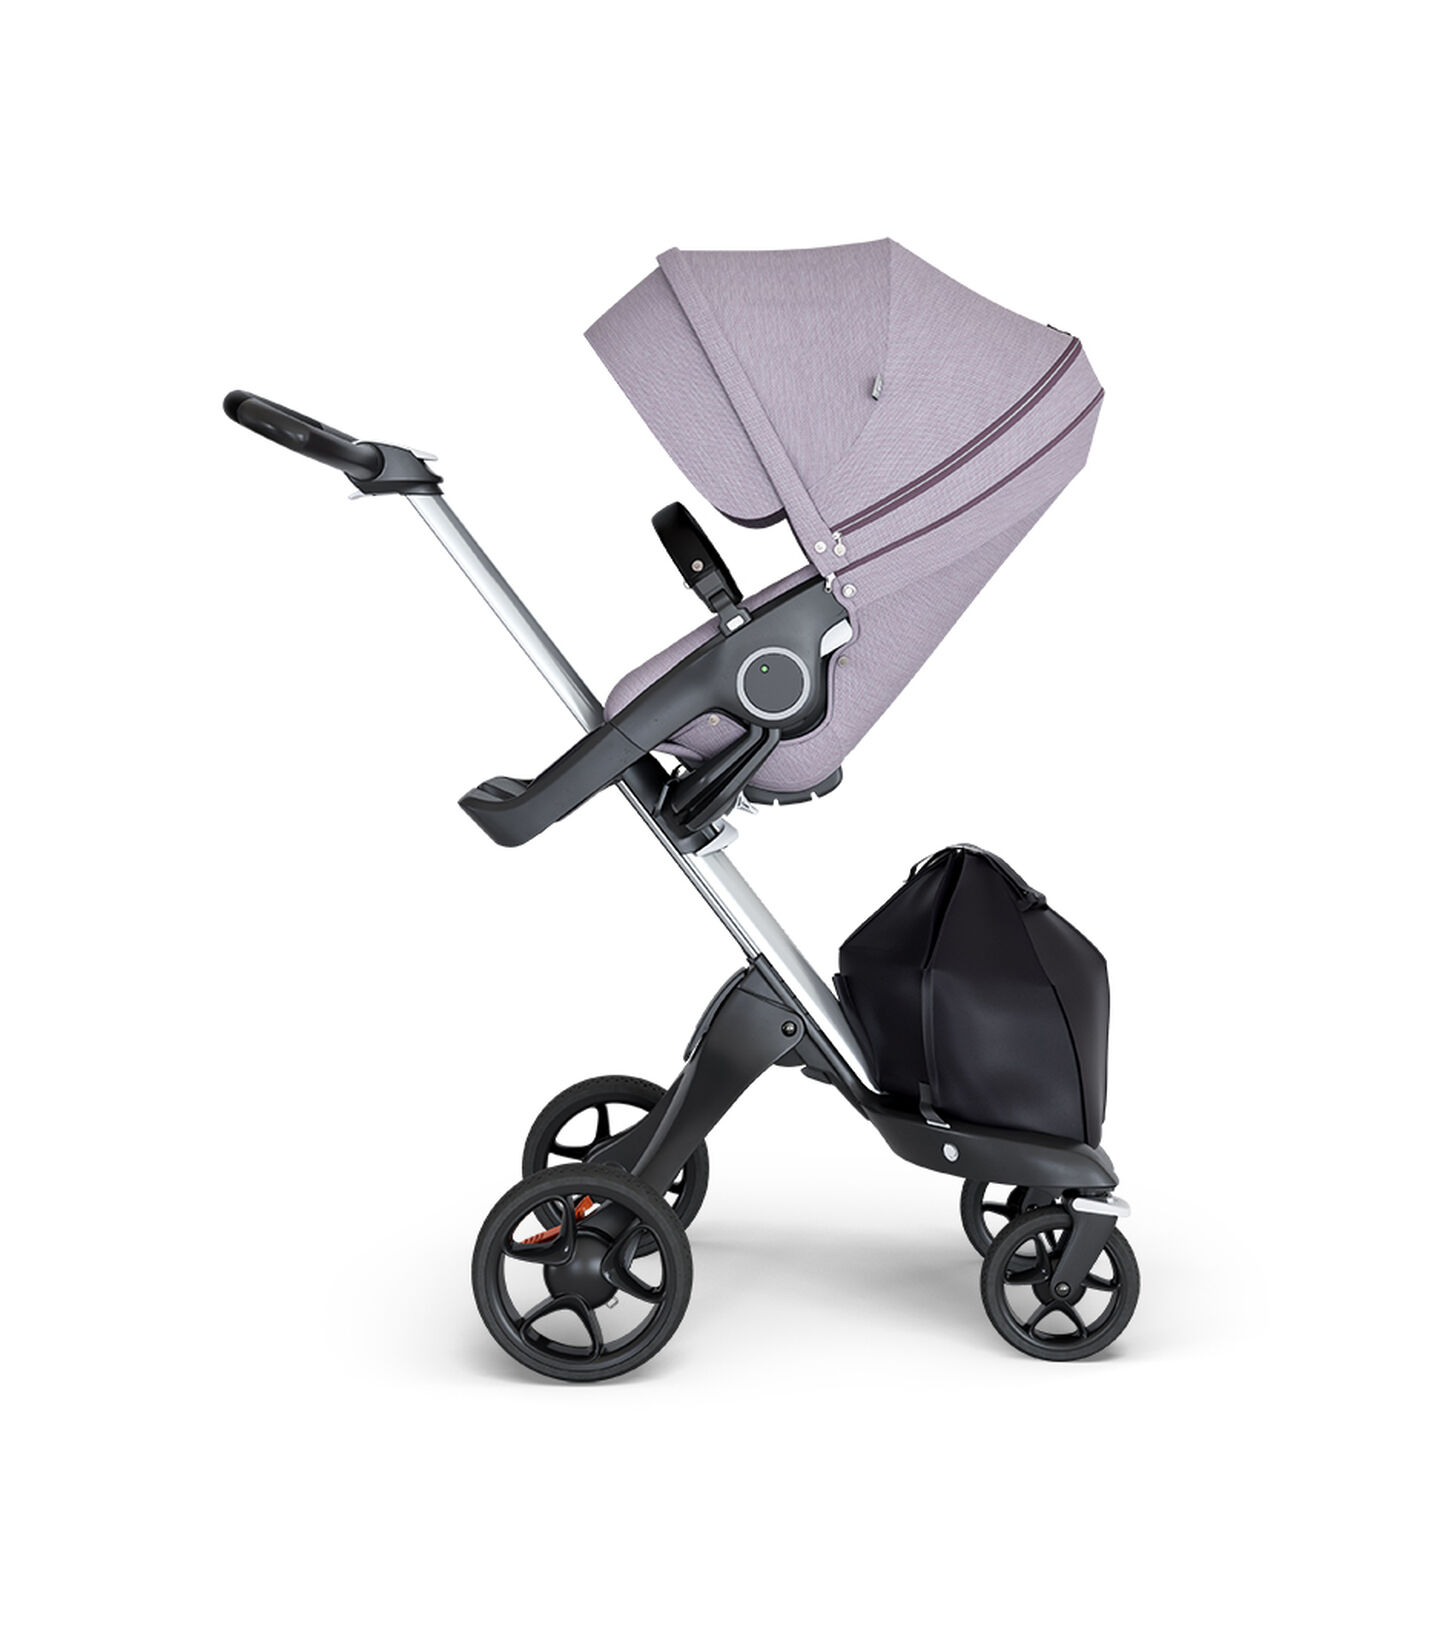 Stokke® Xplory® wtih Silver Chassis and Leatherette Black handle. Stokke® Stroller Seat Brushed Lilac. view 2